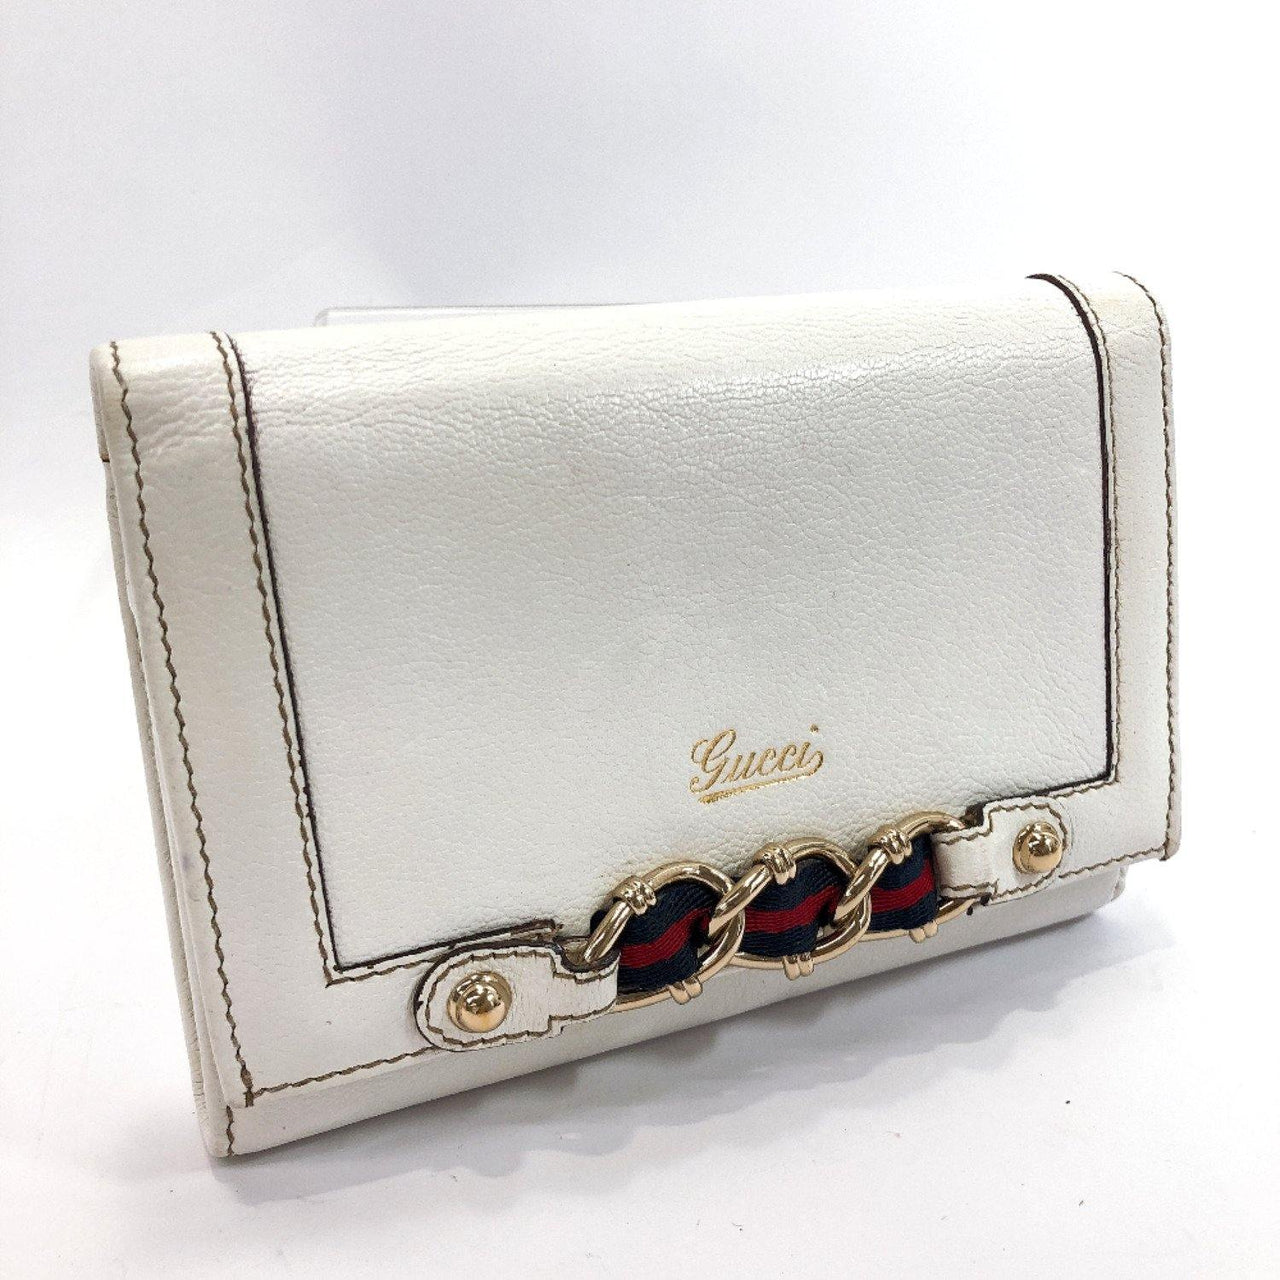 GUCCI wallet 155174・2067 Sherry line leather white Women Used - JP-BRANDS.com